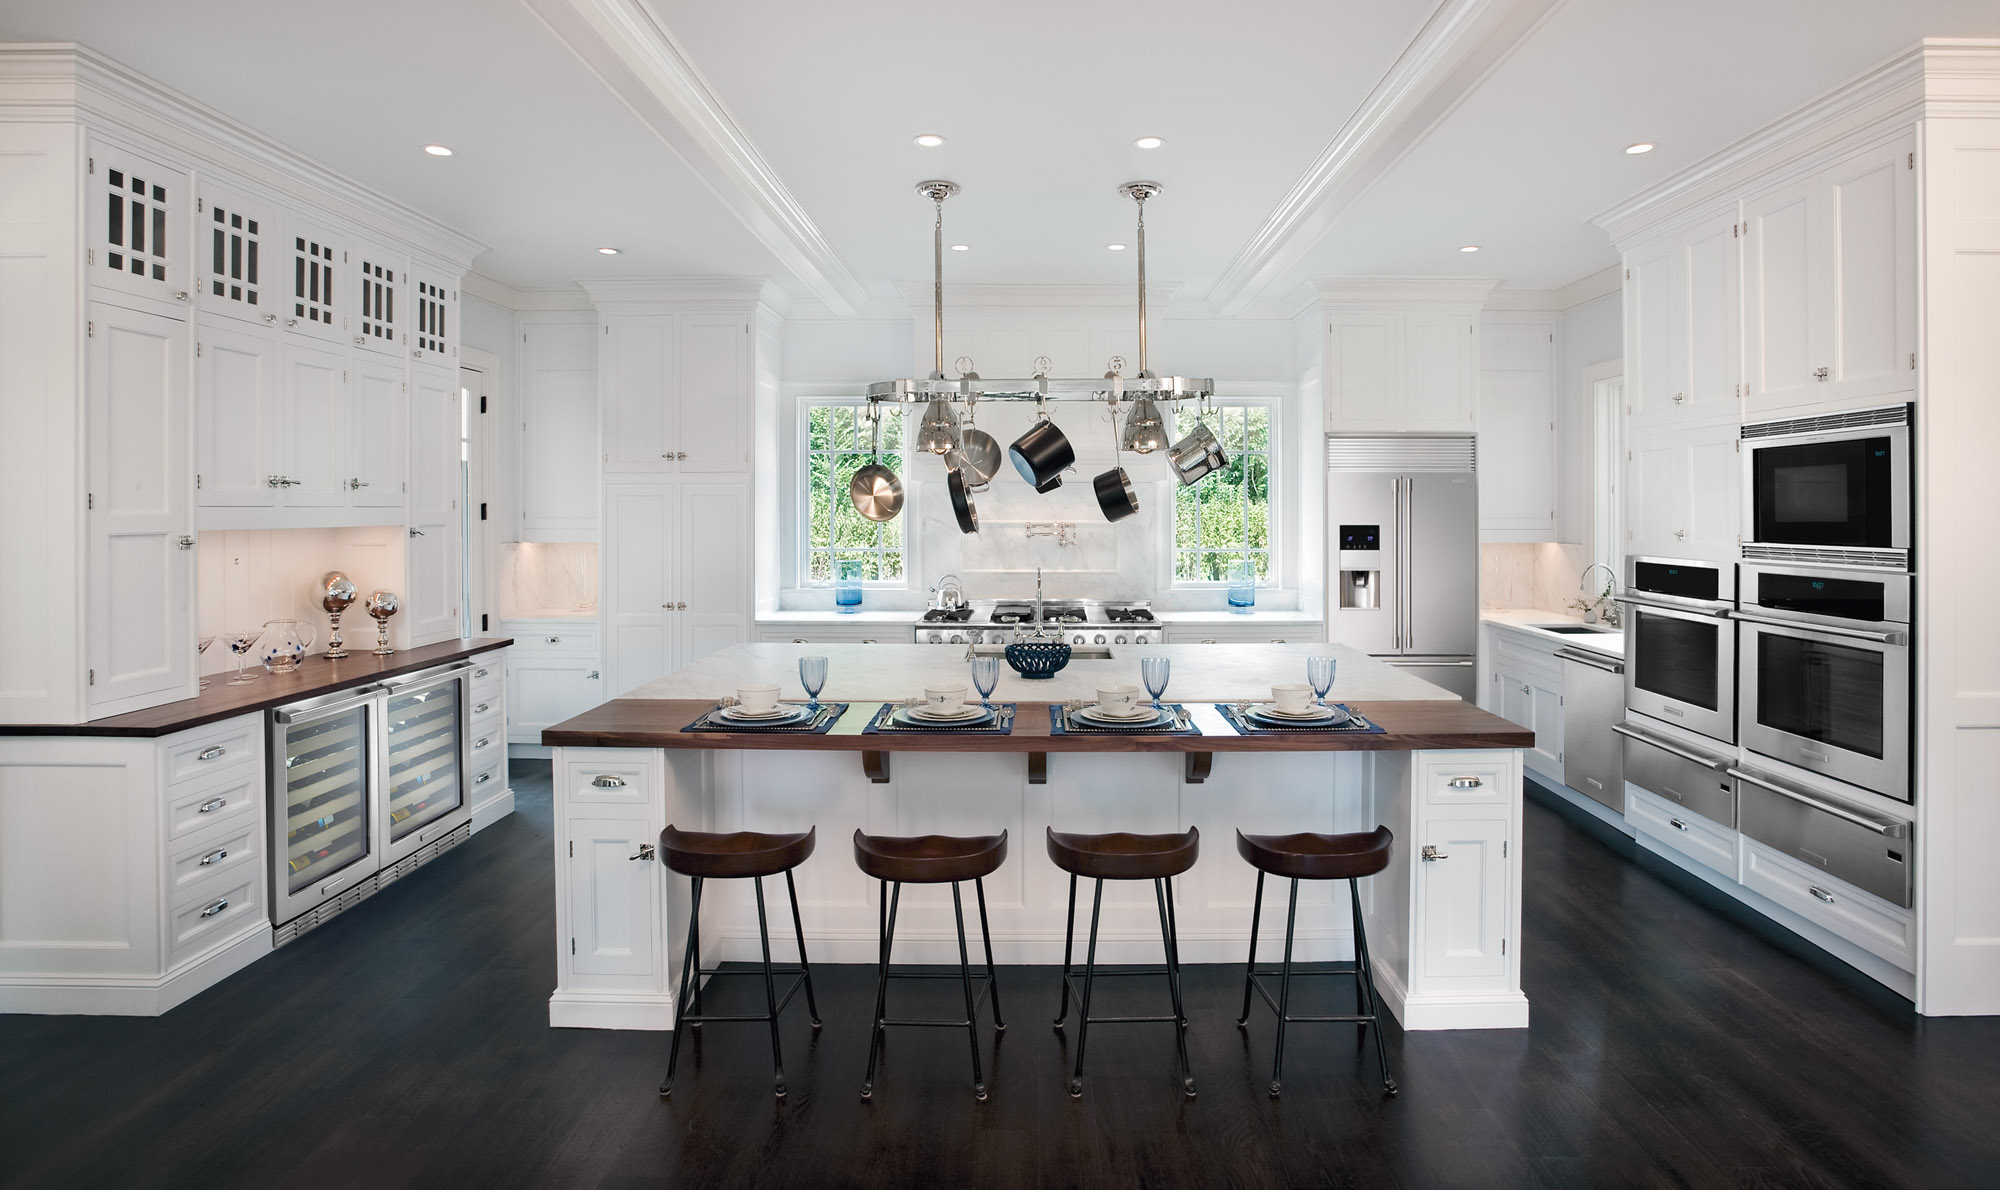 How to Design a Pro Kitchen